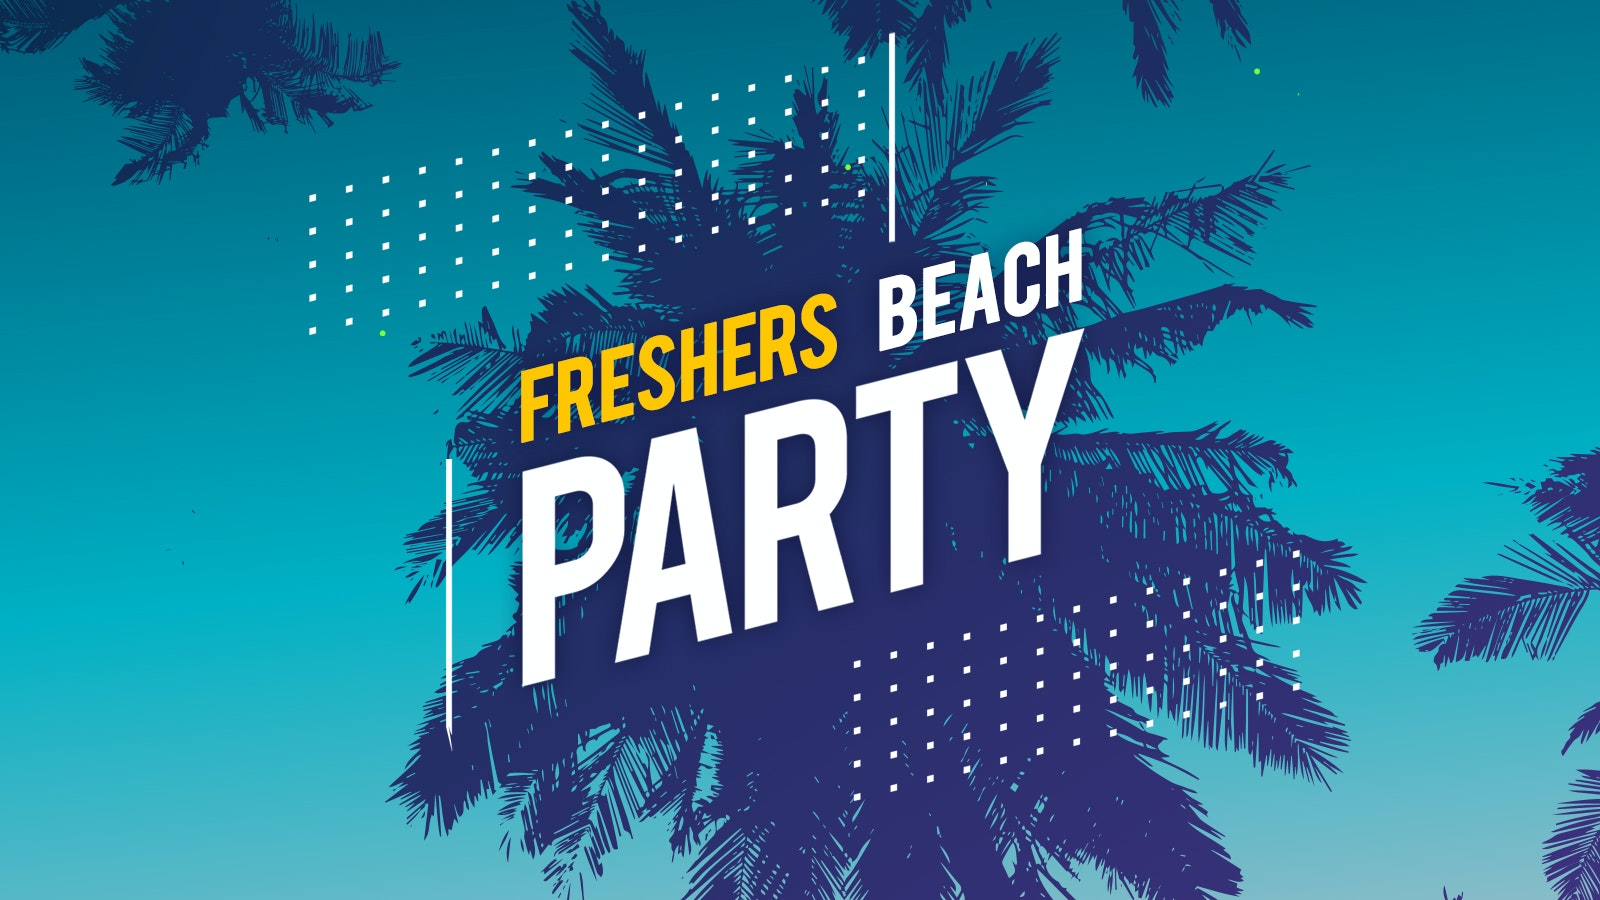 Freshers Beach Party | Coventry Freshers 2019